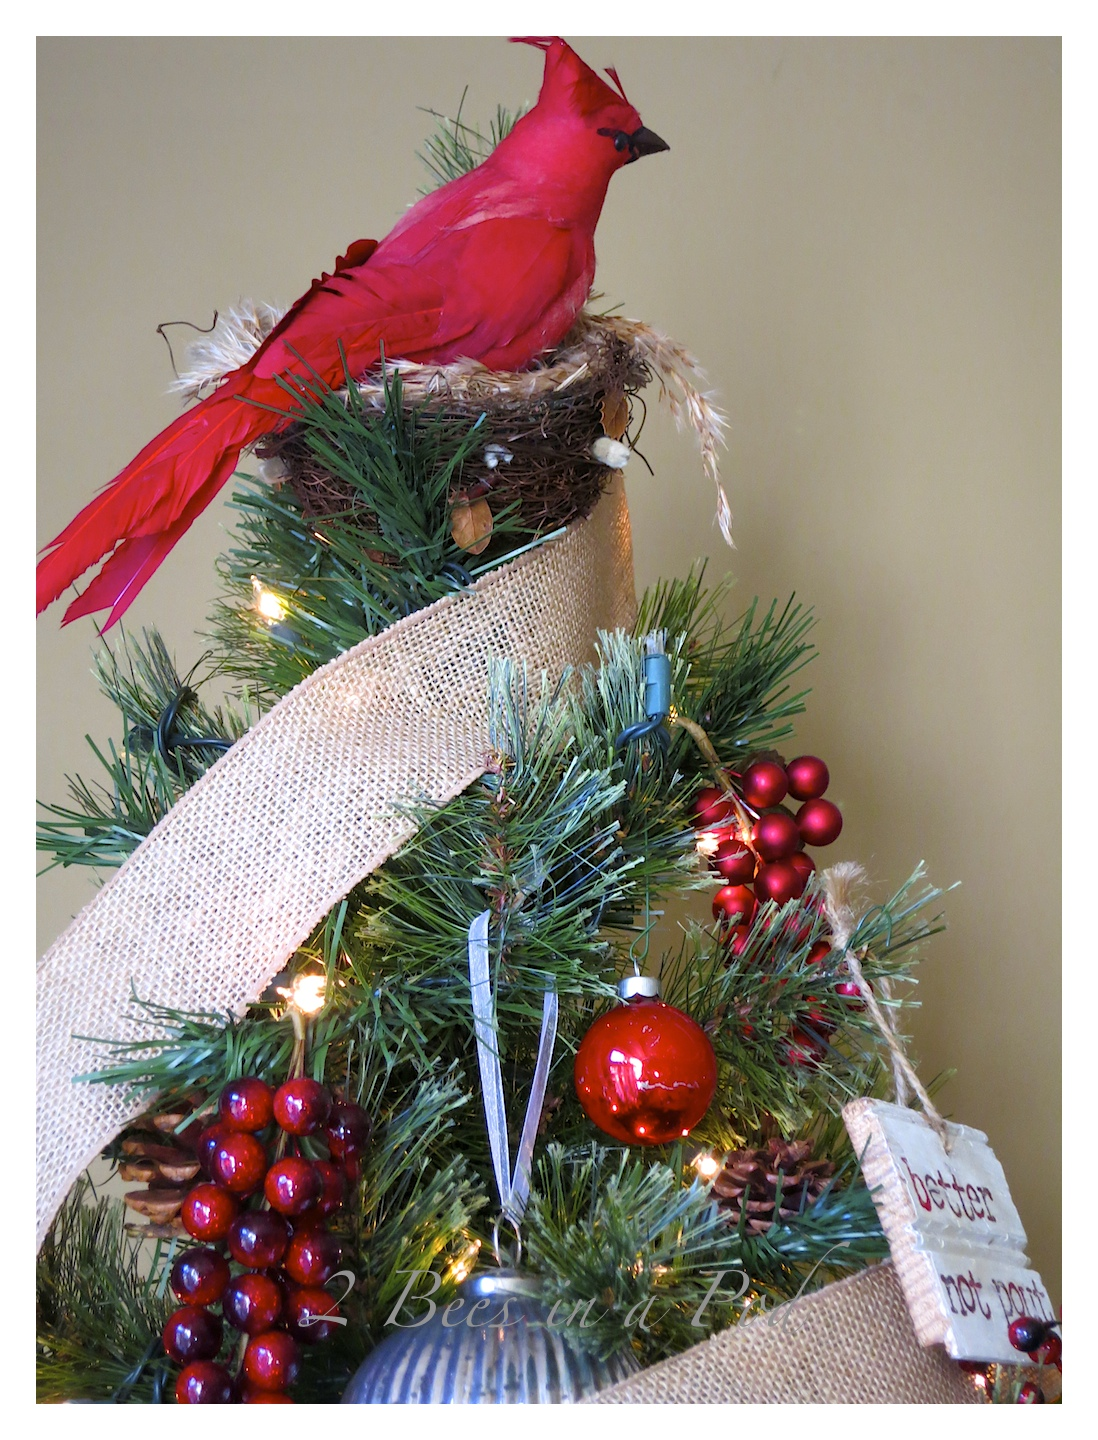 Rustic Christmas - I love the crusty, rusty, chippy and warmth that rustic elements bring to my home for Christmas!